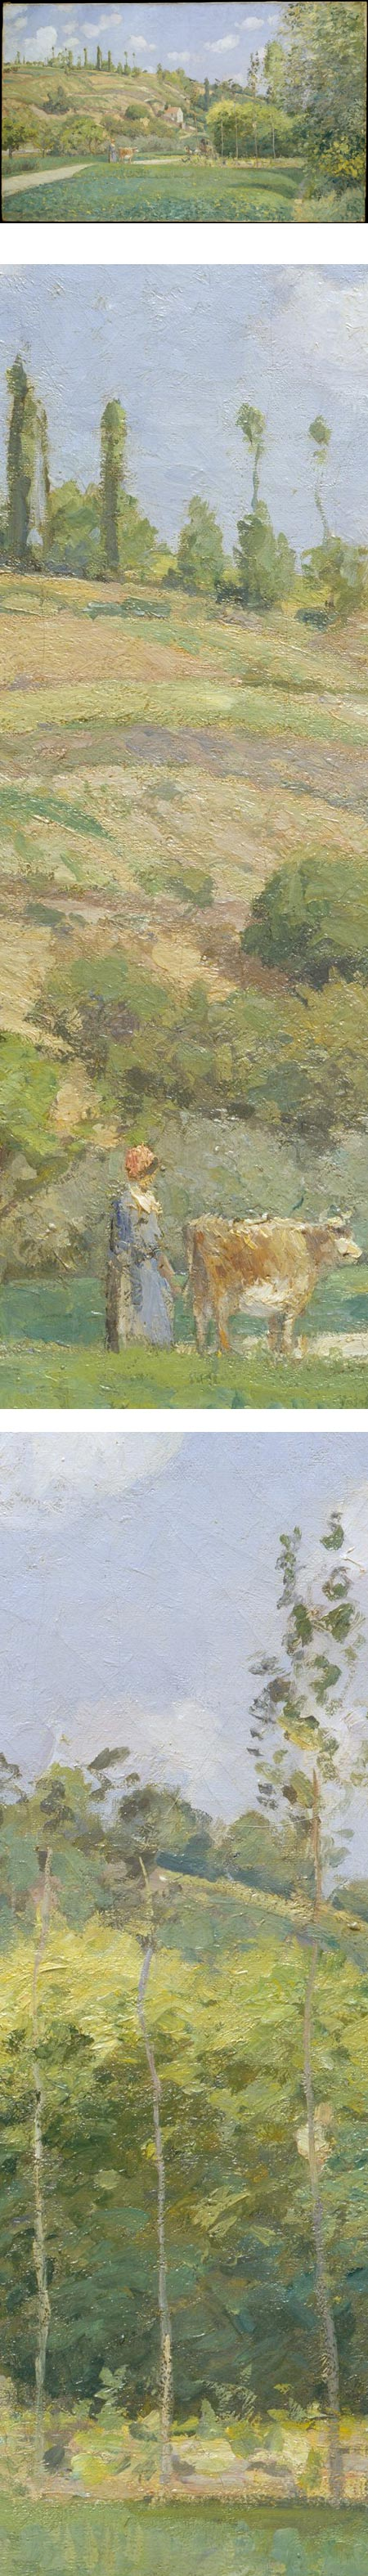 A Cowherd at Valhermeil, Auvers-sur-Oise by Camille Pissarro